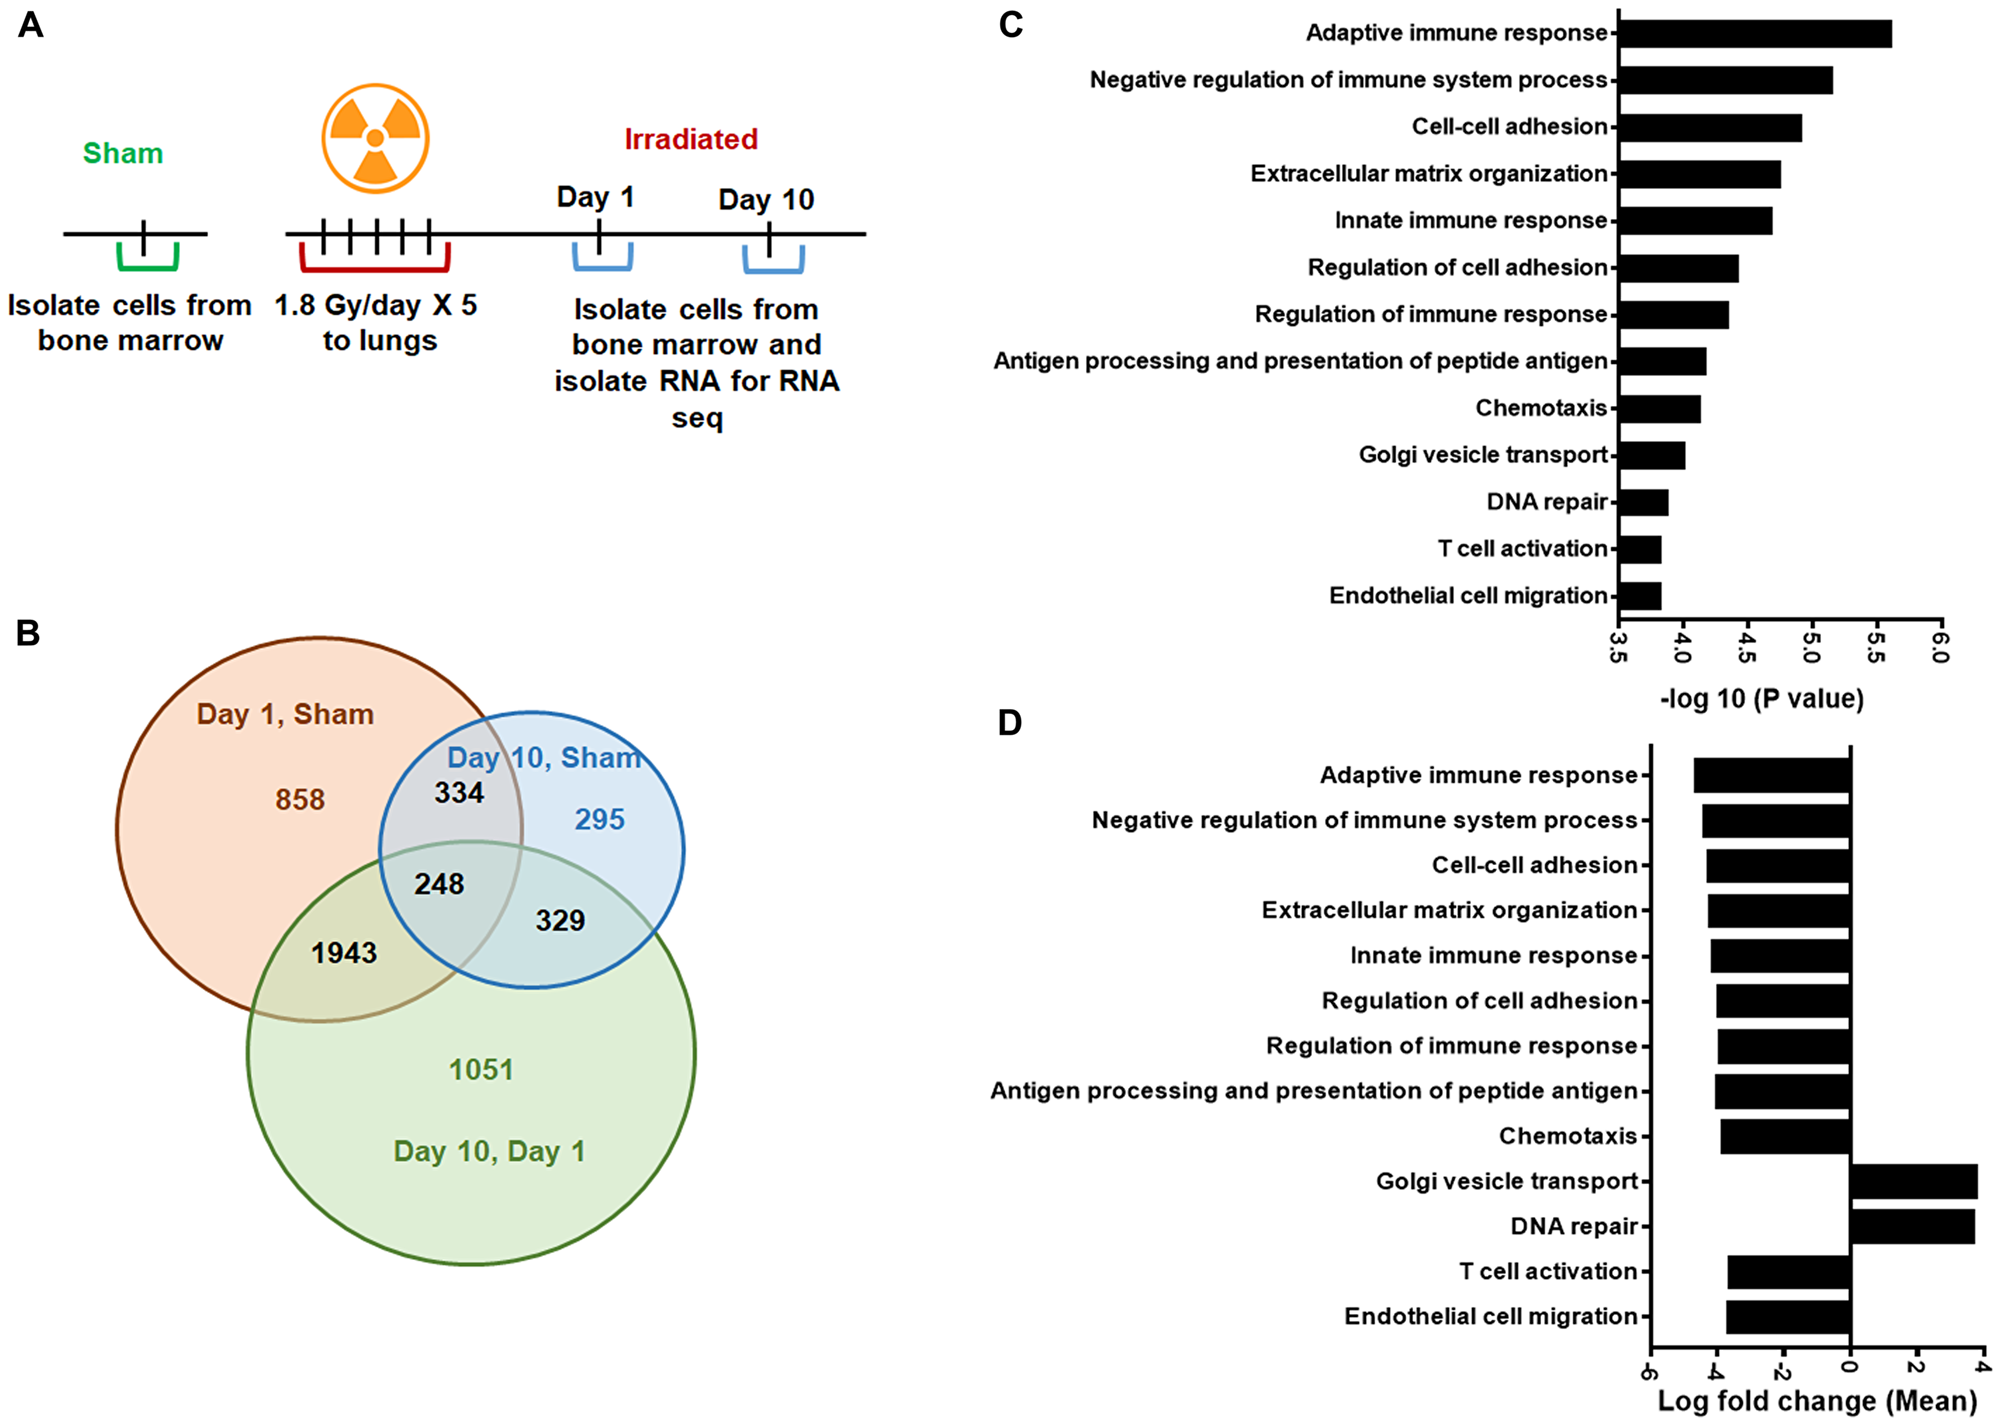 Gene Ontology (GO) analysis to identify differentially regulated genes.